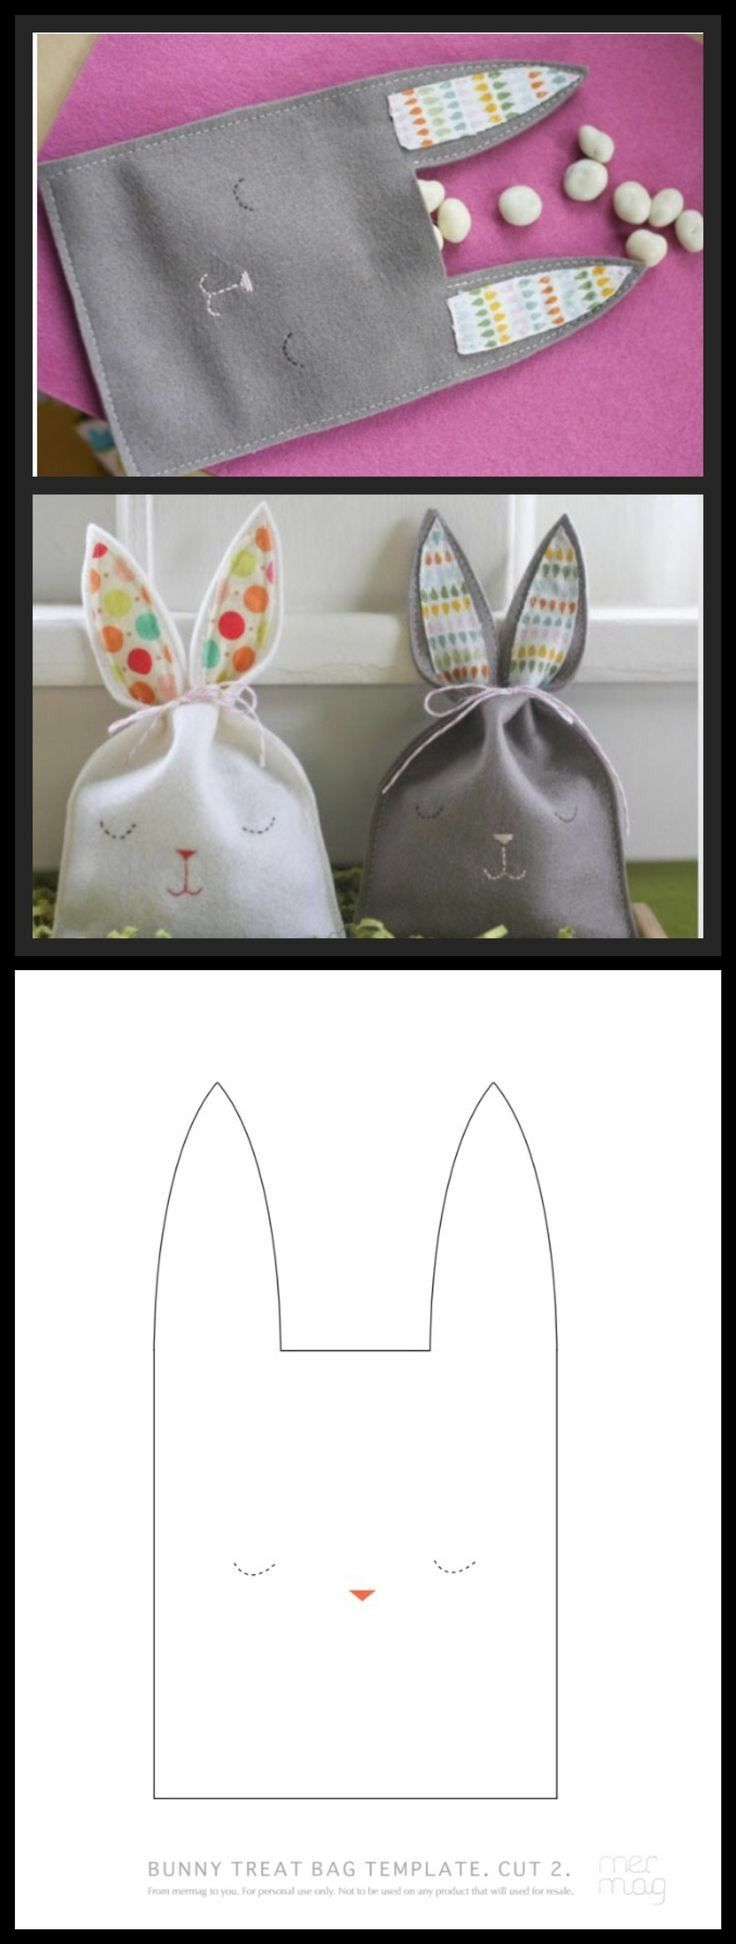 Rabbit bag bags Easter